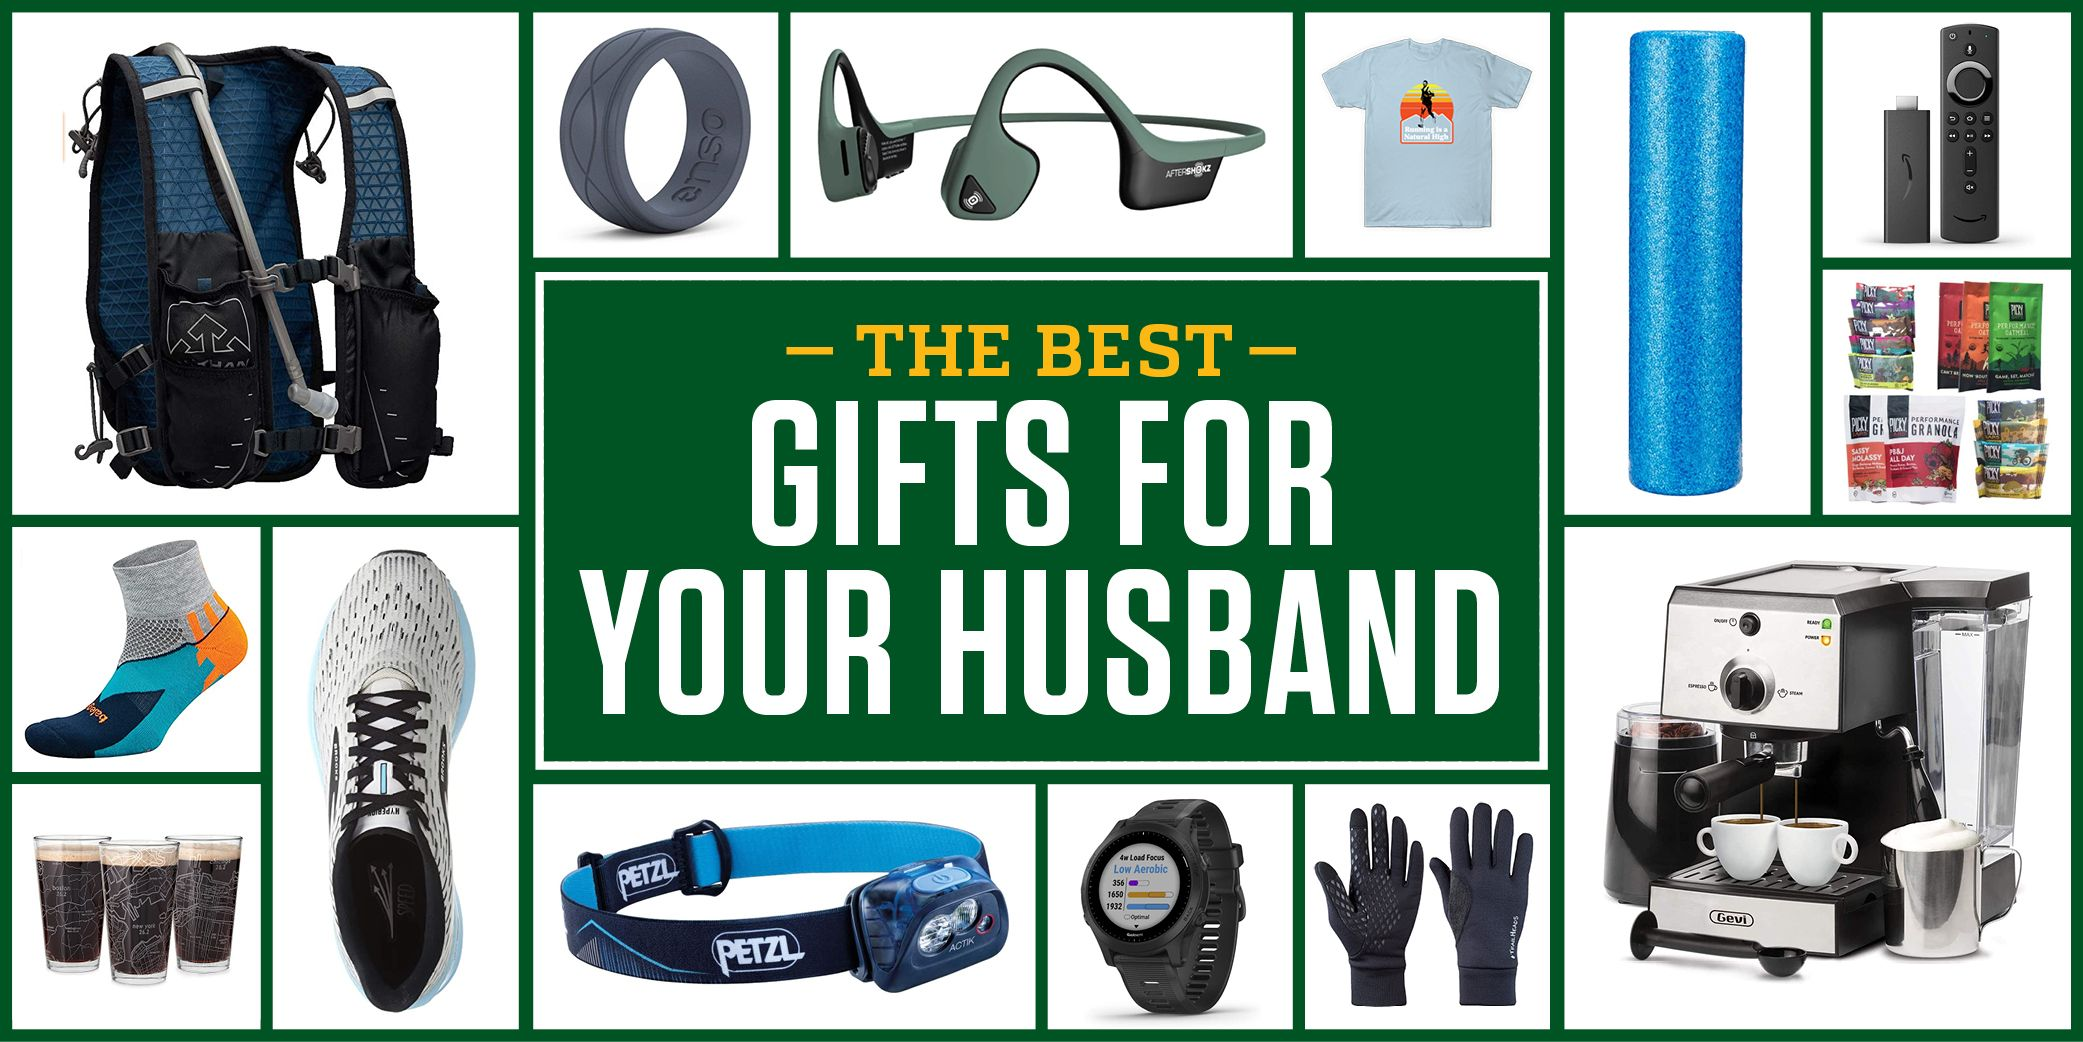 The 25 Best Runnings Gifts You Can Buy for Your Husband